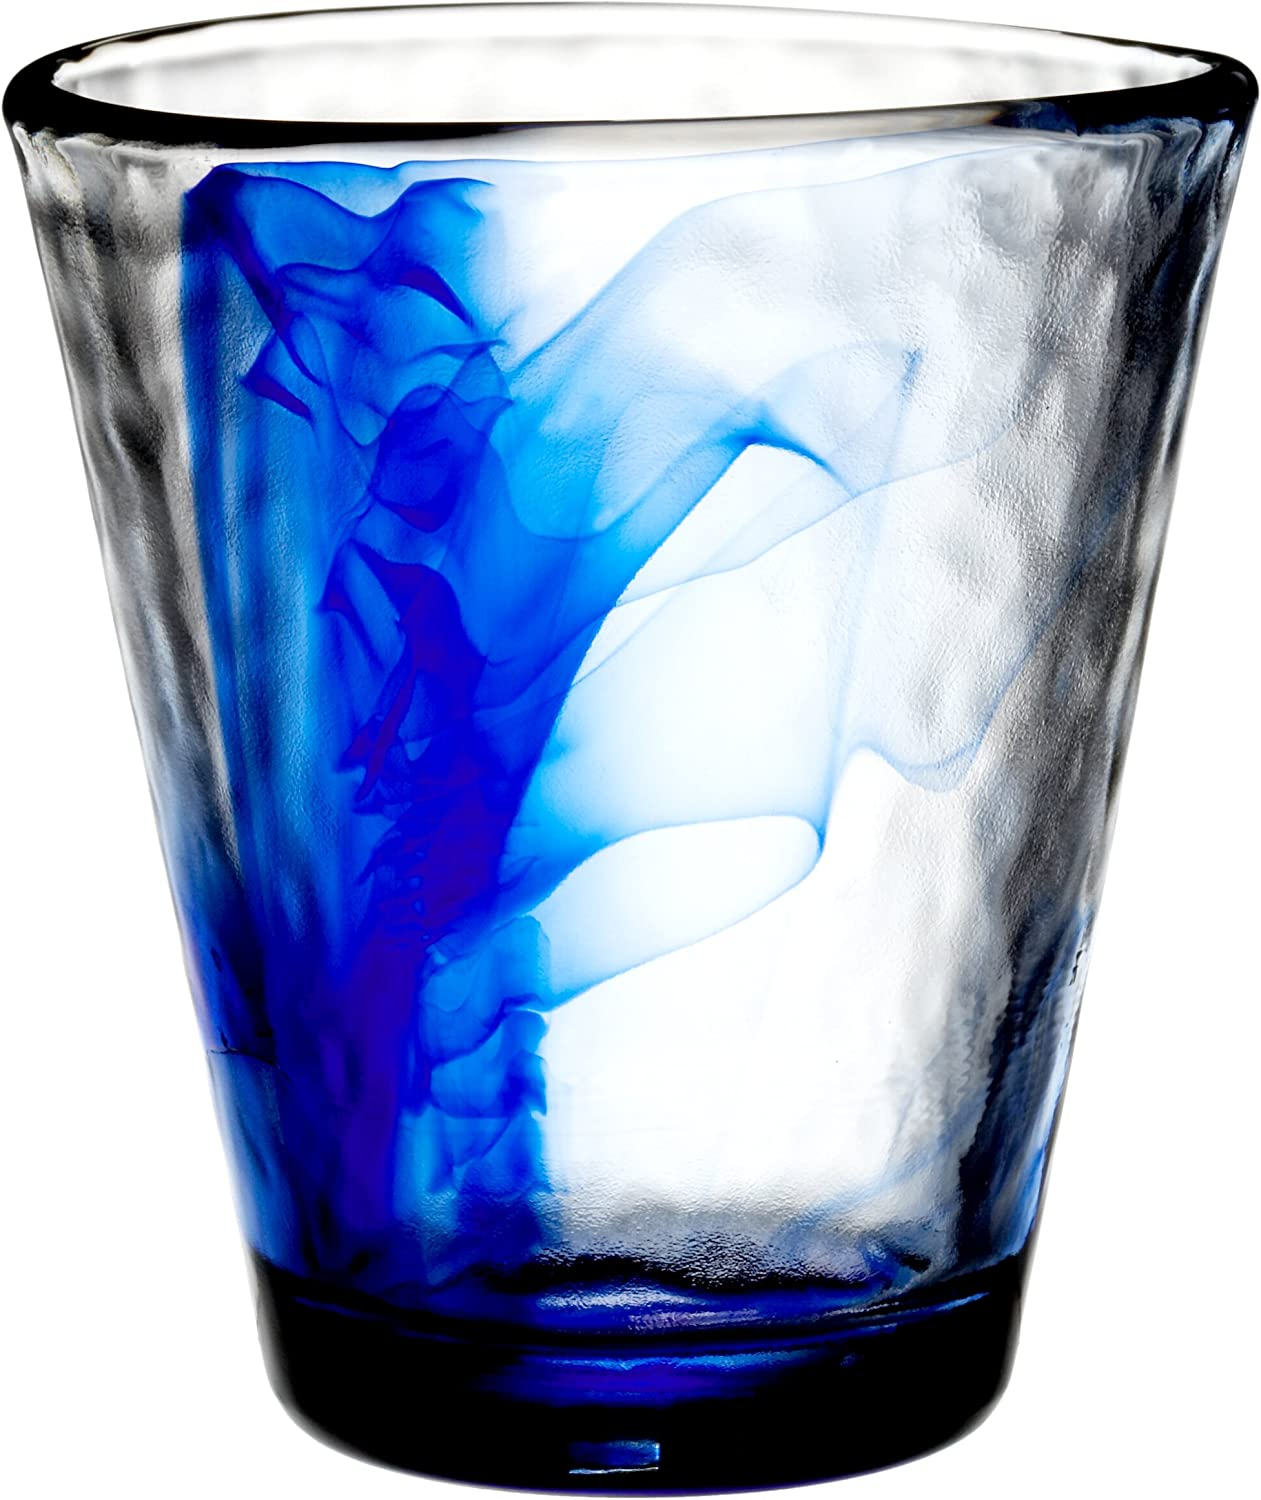 Bormioli Rocco Murano 14.5 oz. Cobalt Blue Beverage Glass, Set of 4, Standard Packaging